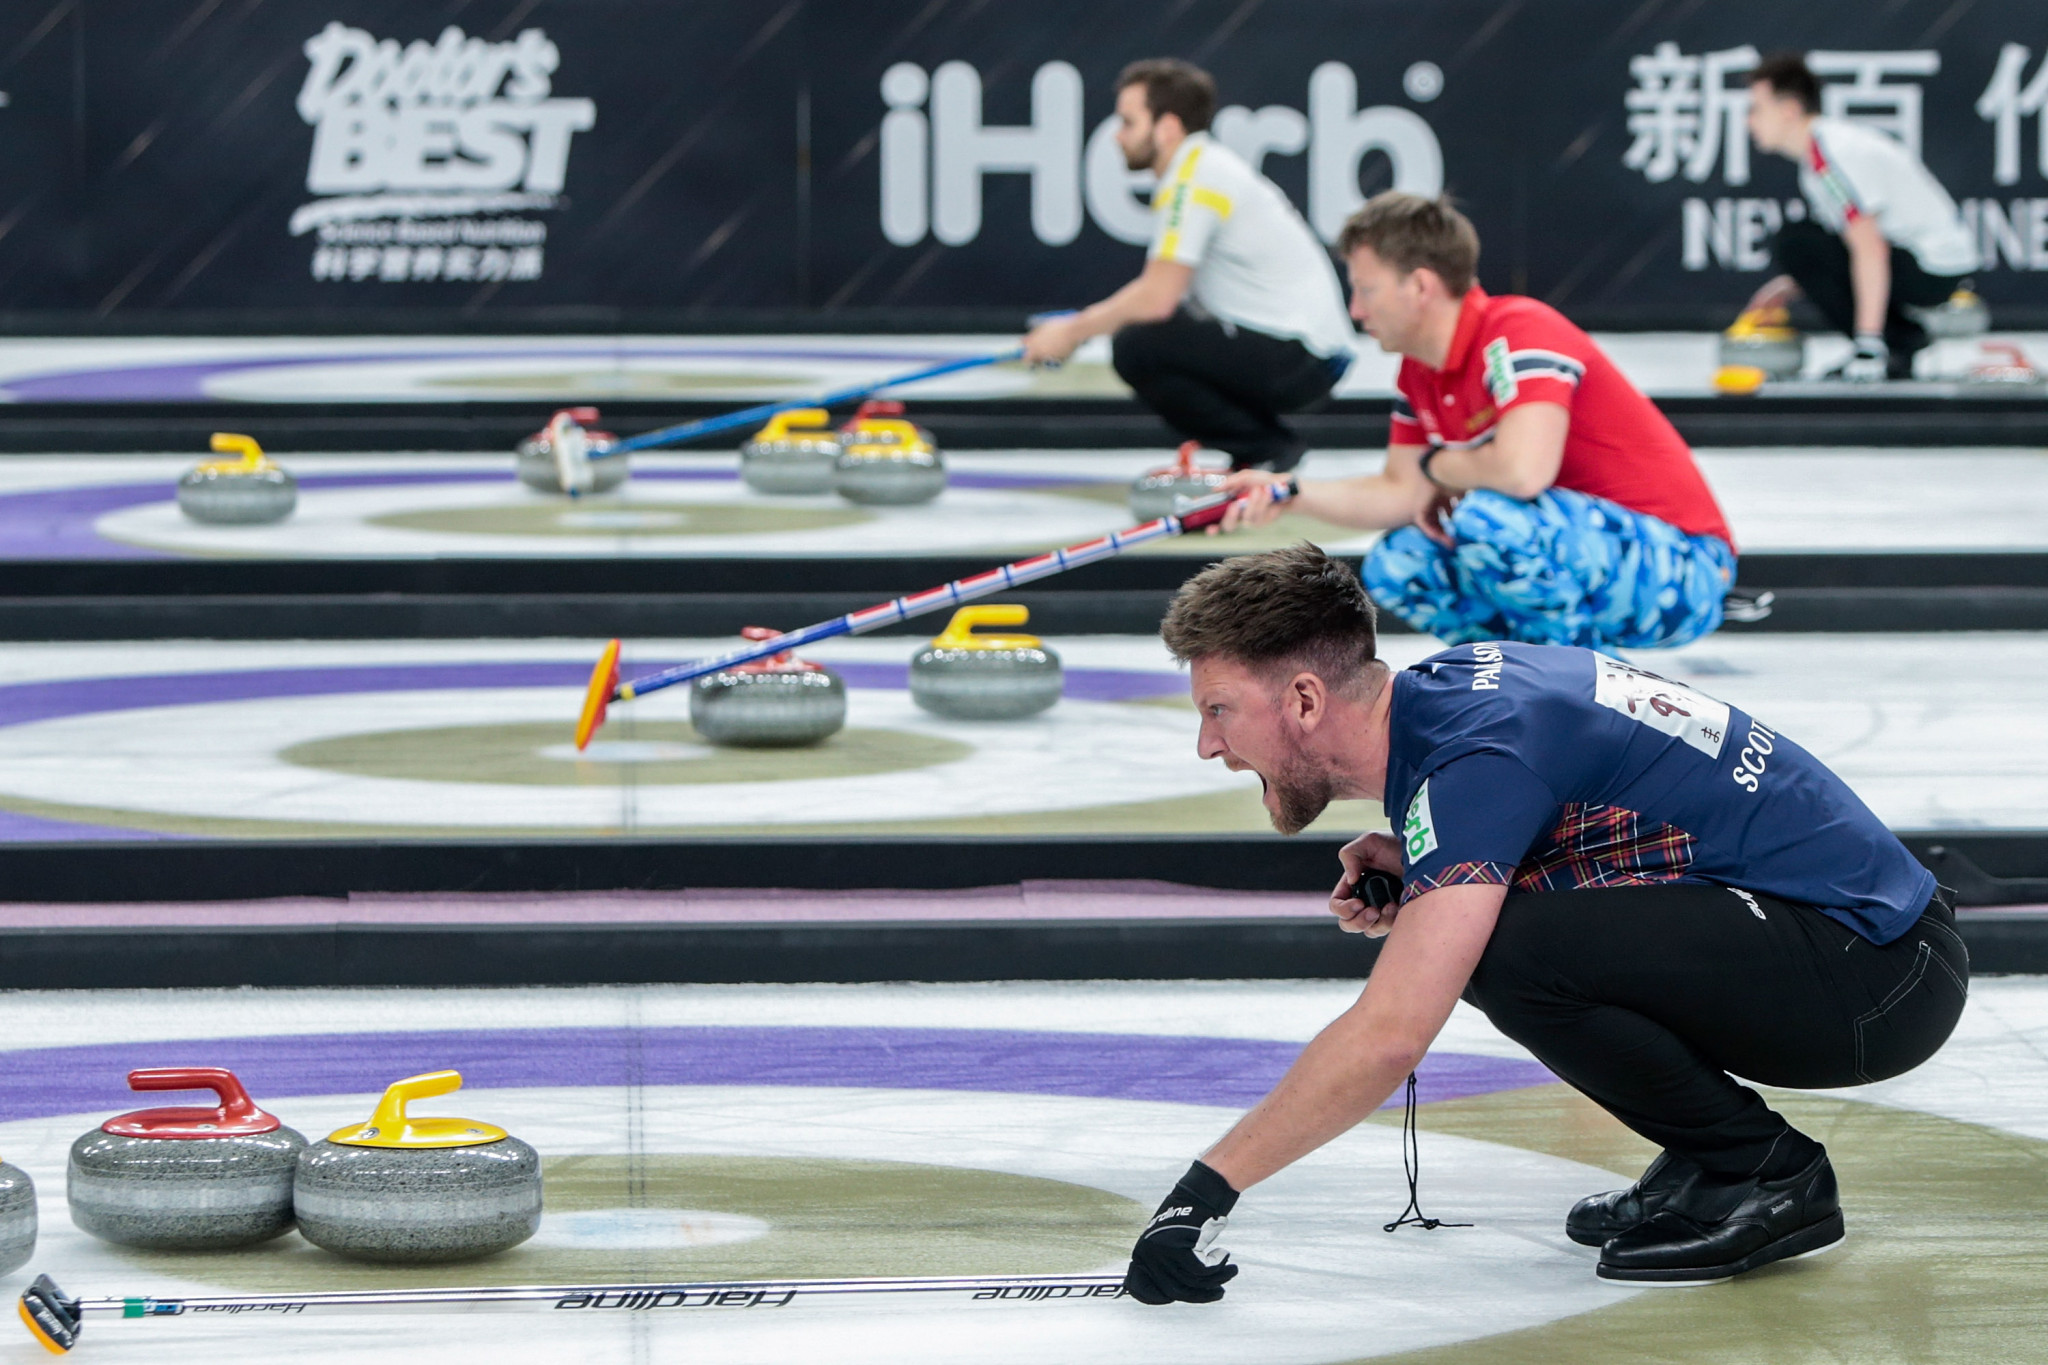 Ross Paterson, in navy, is the Scottish skip as his side look to defend their 2018 European Curling Championship title in Helsingborg ©Getty Images